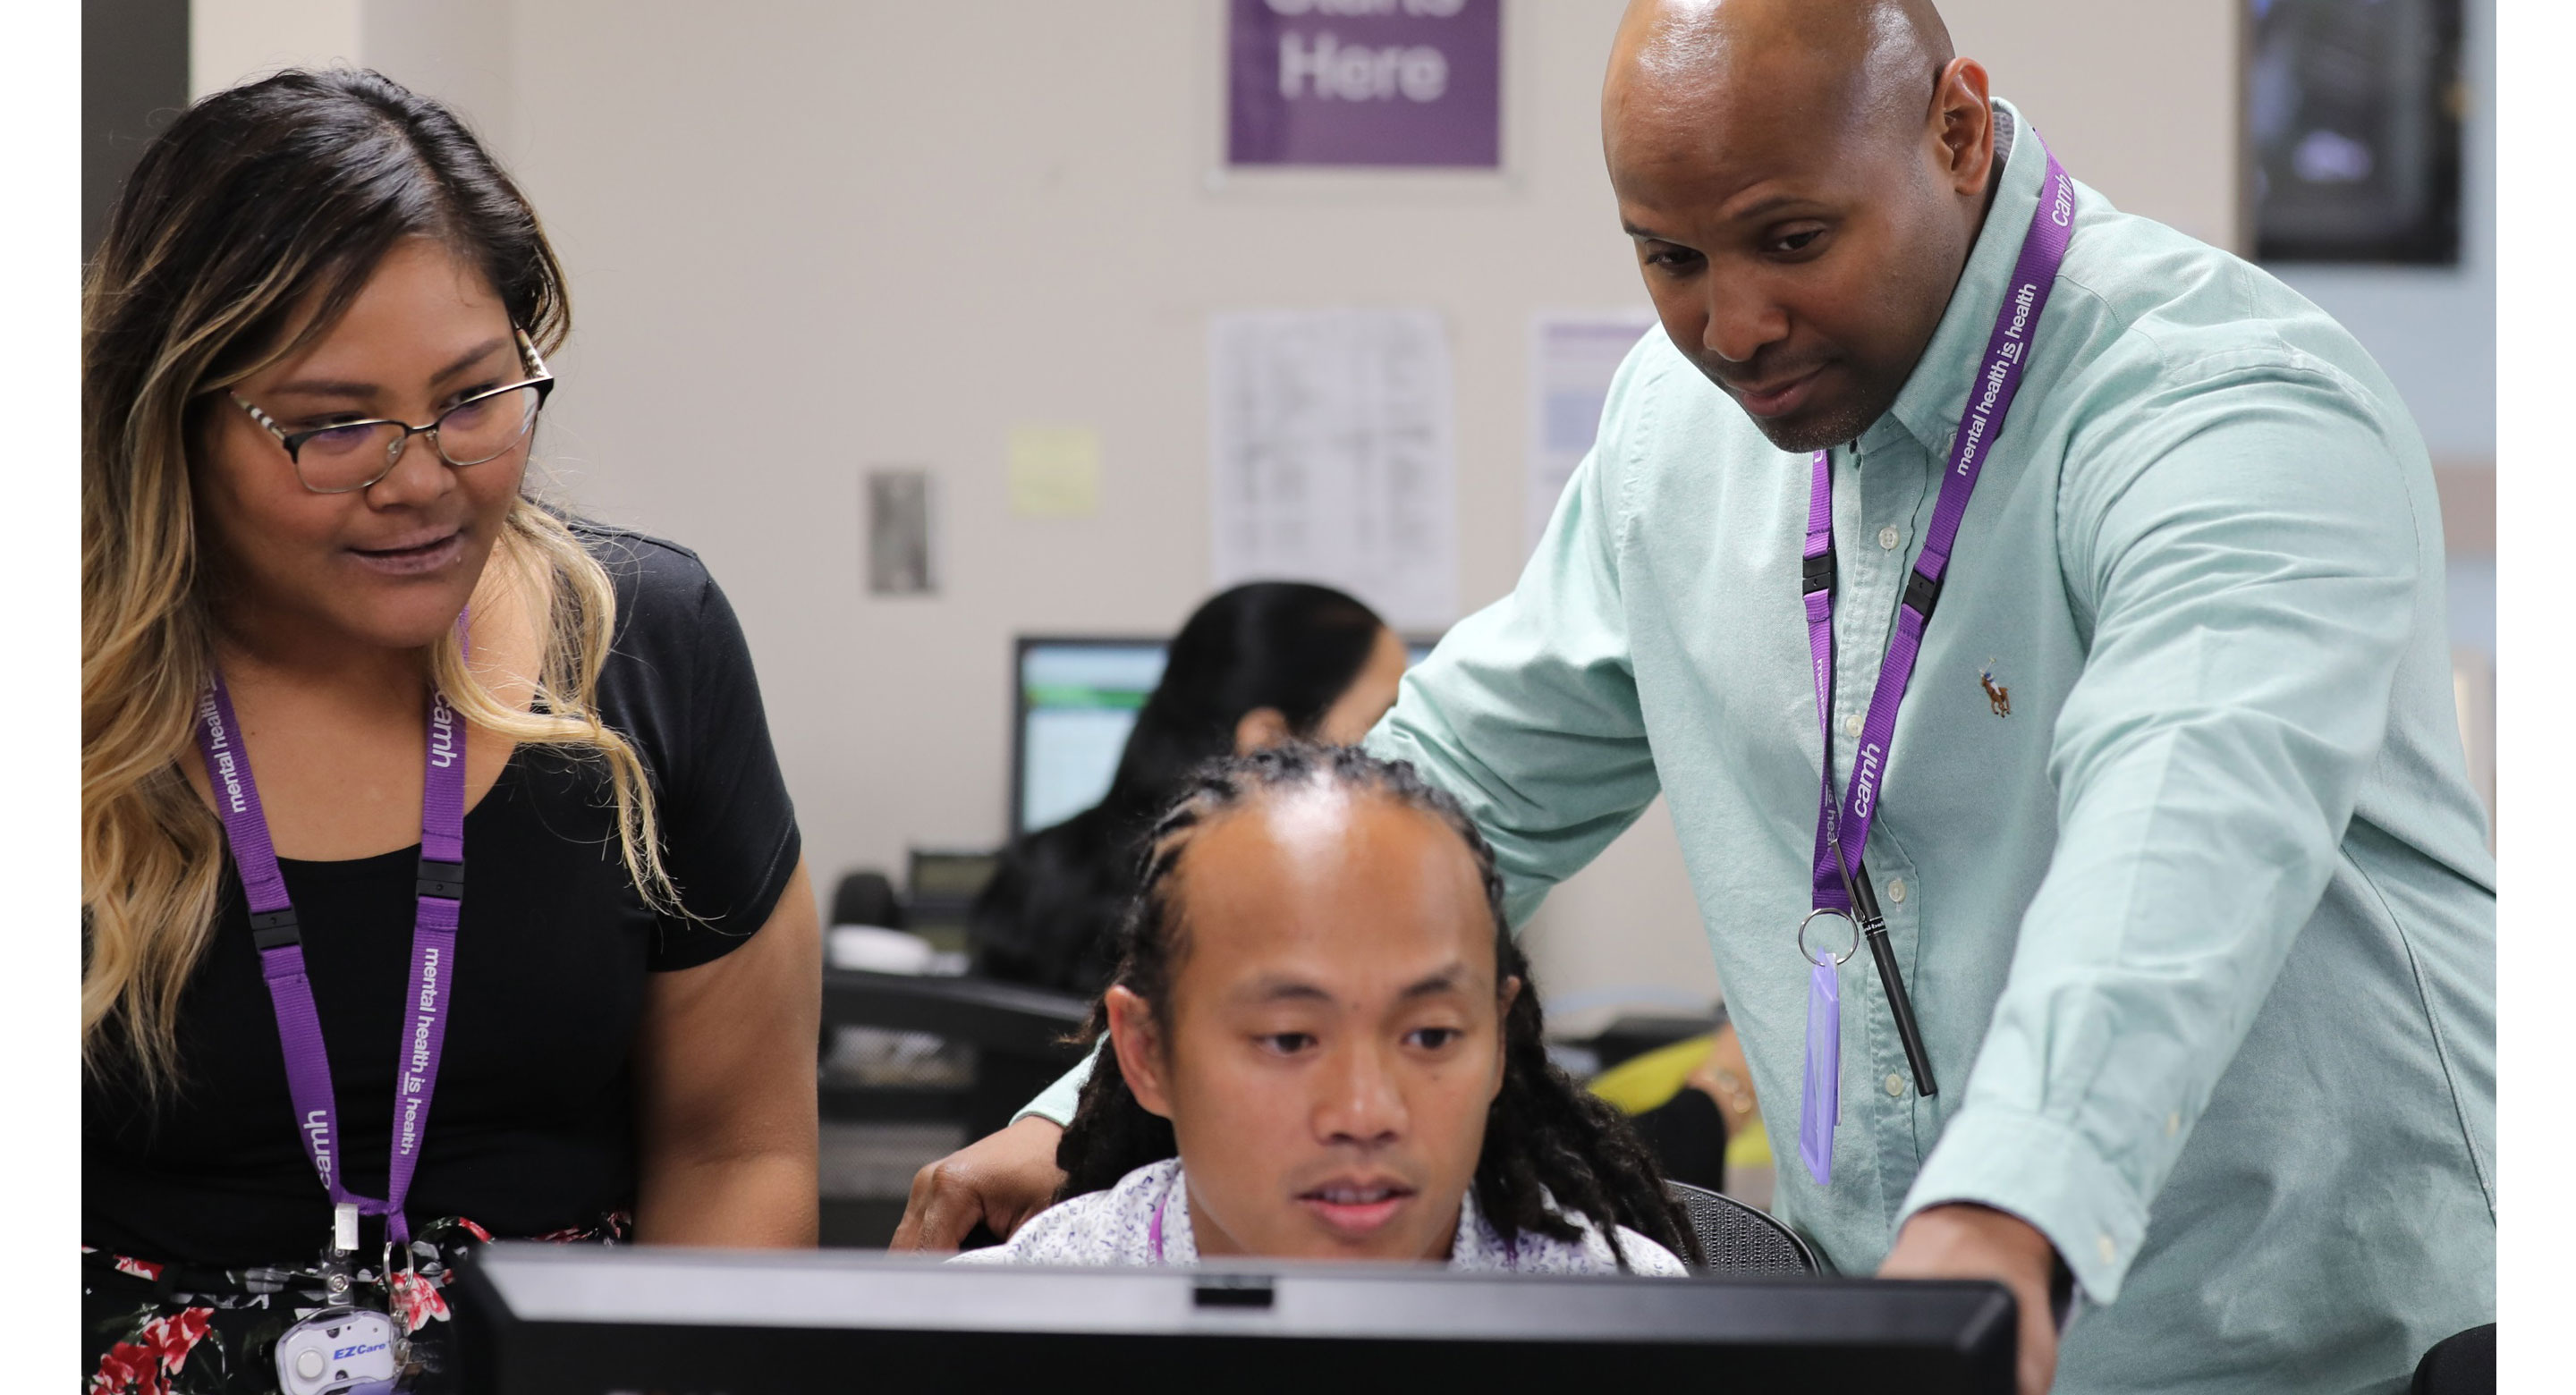 Staff looking at computer at CAMH's Gerald Sheff and Shanitha Kachan Emergency Department